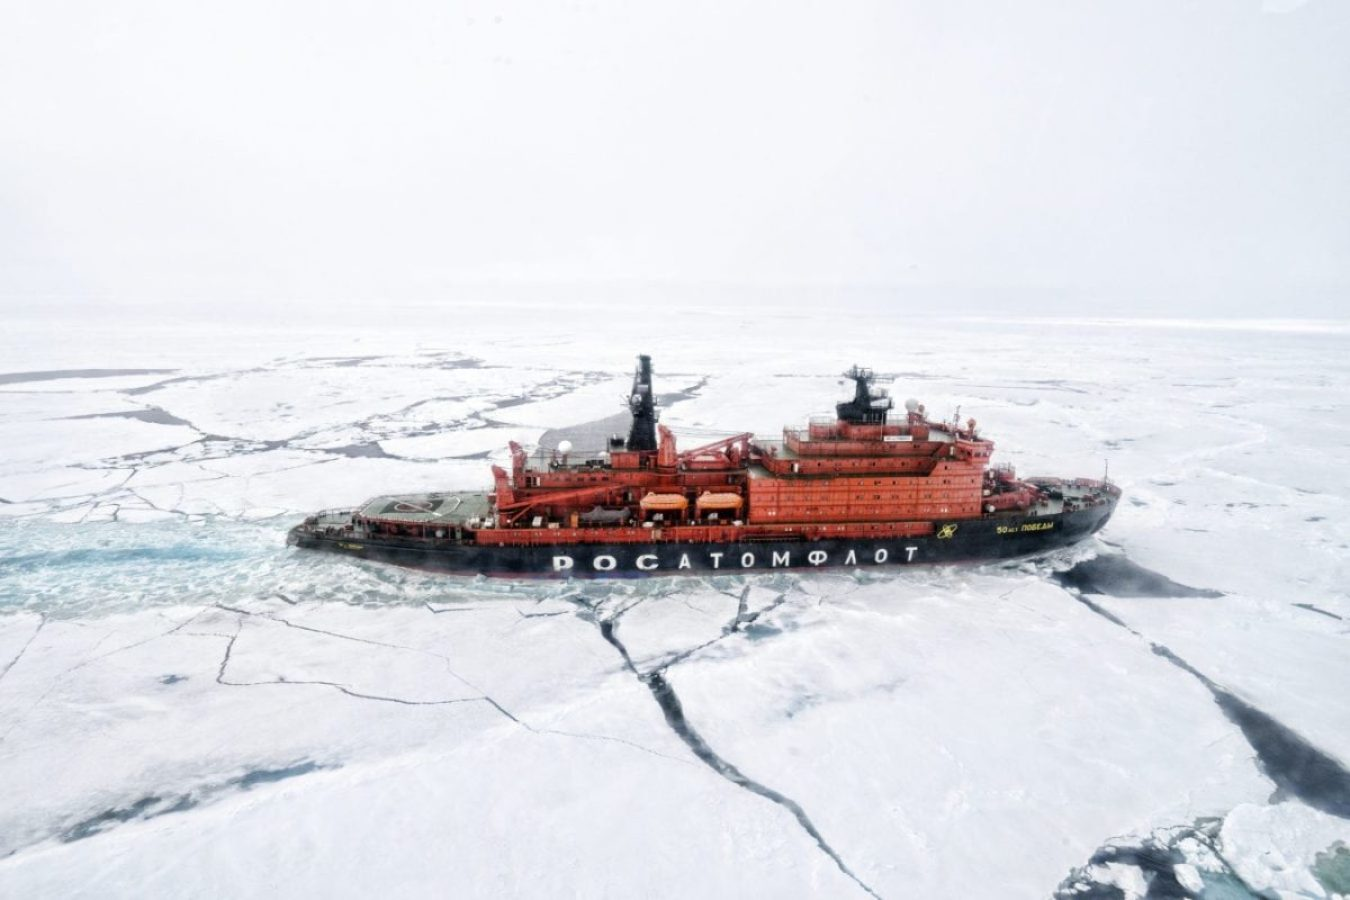 The Russian Rosatomflot icebreaker 50 years of Victory breaking ice in the Artic 1025. Near-peer competitors like Russia and China are expanding their icebreaking fleets and Arctic capabilities.